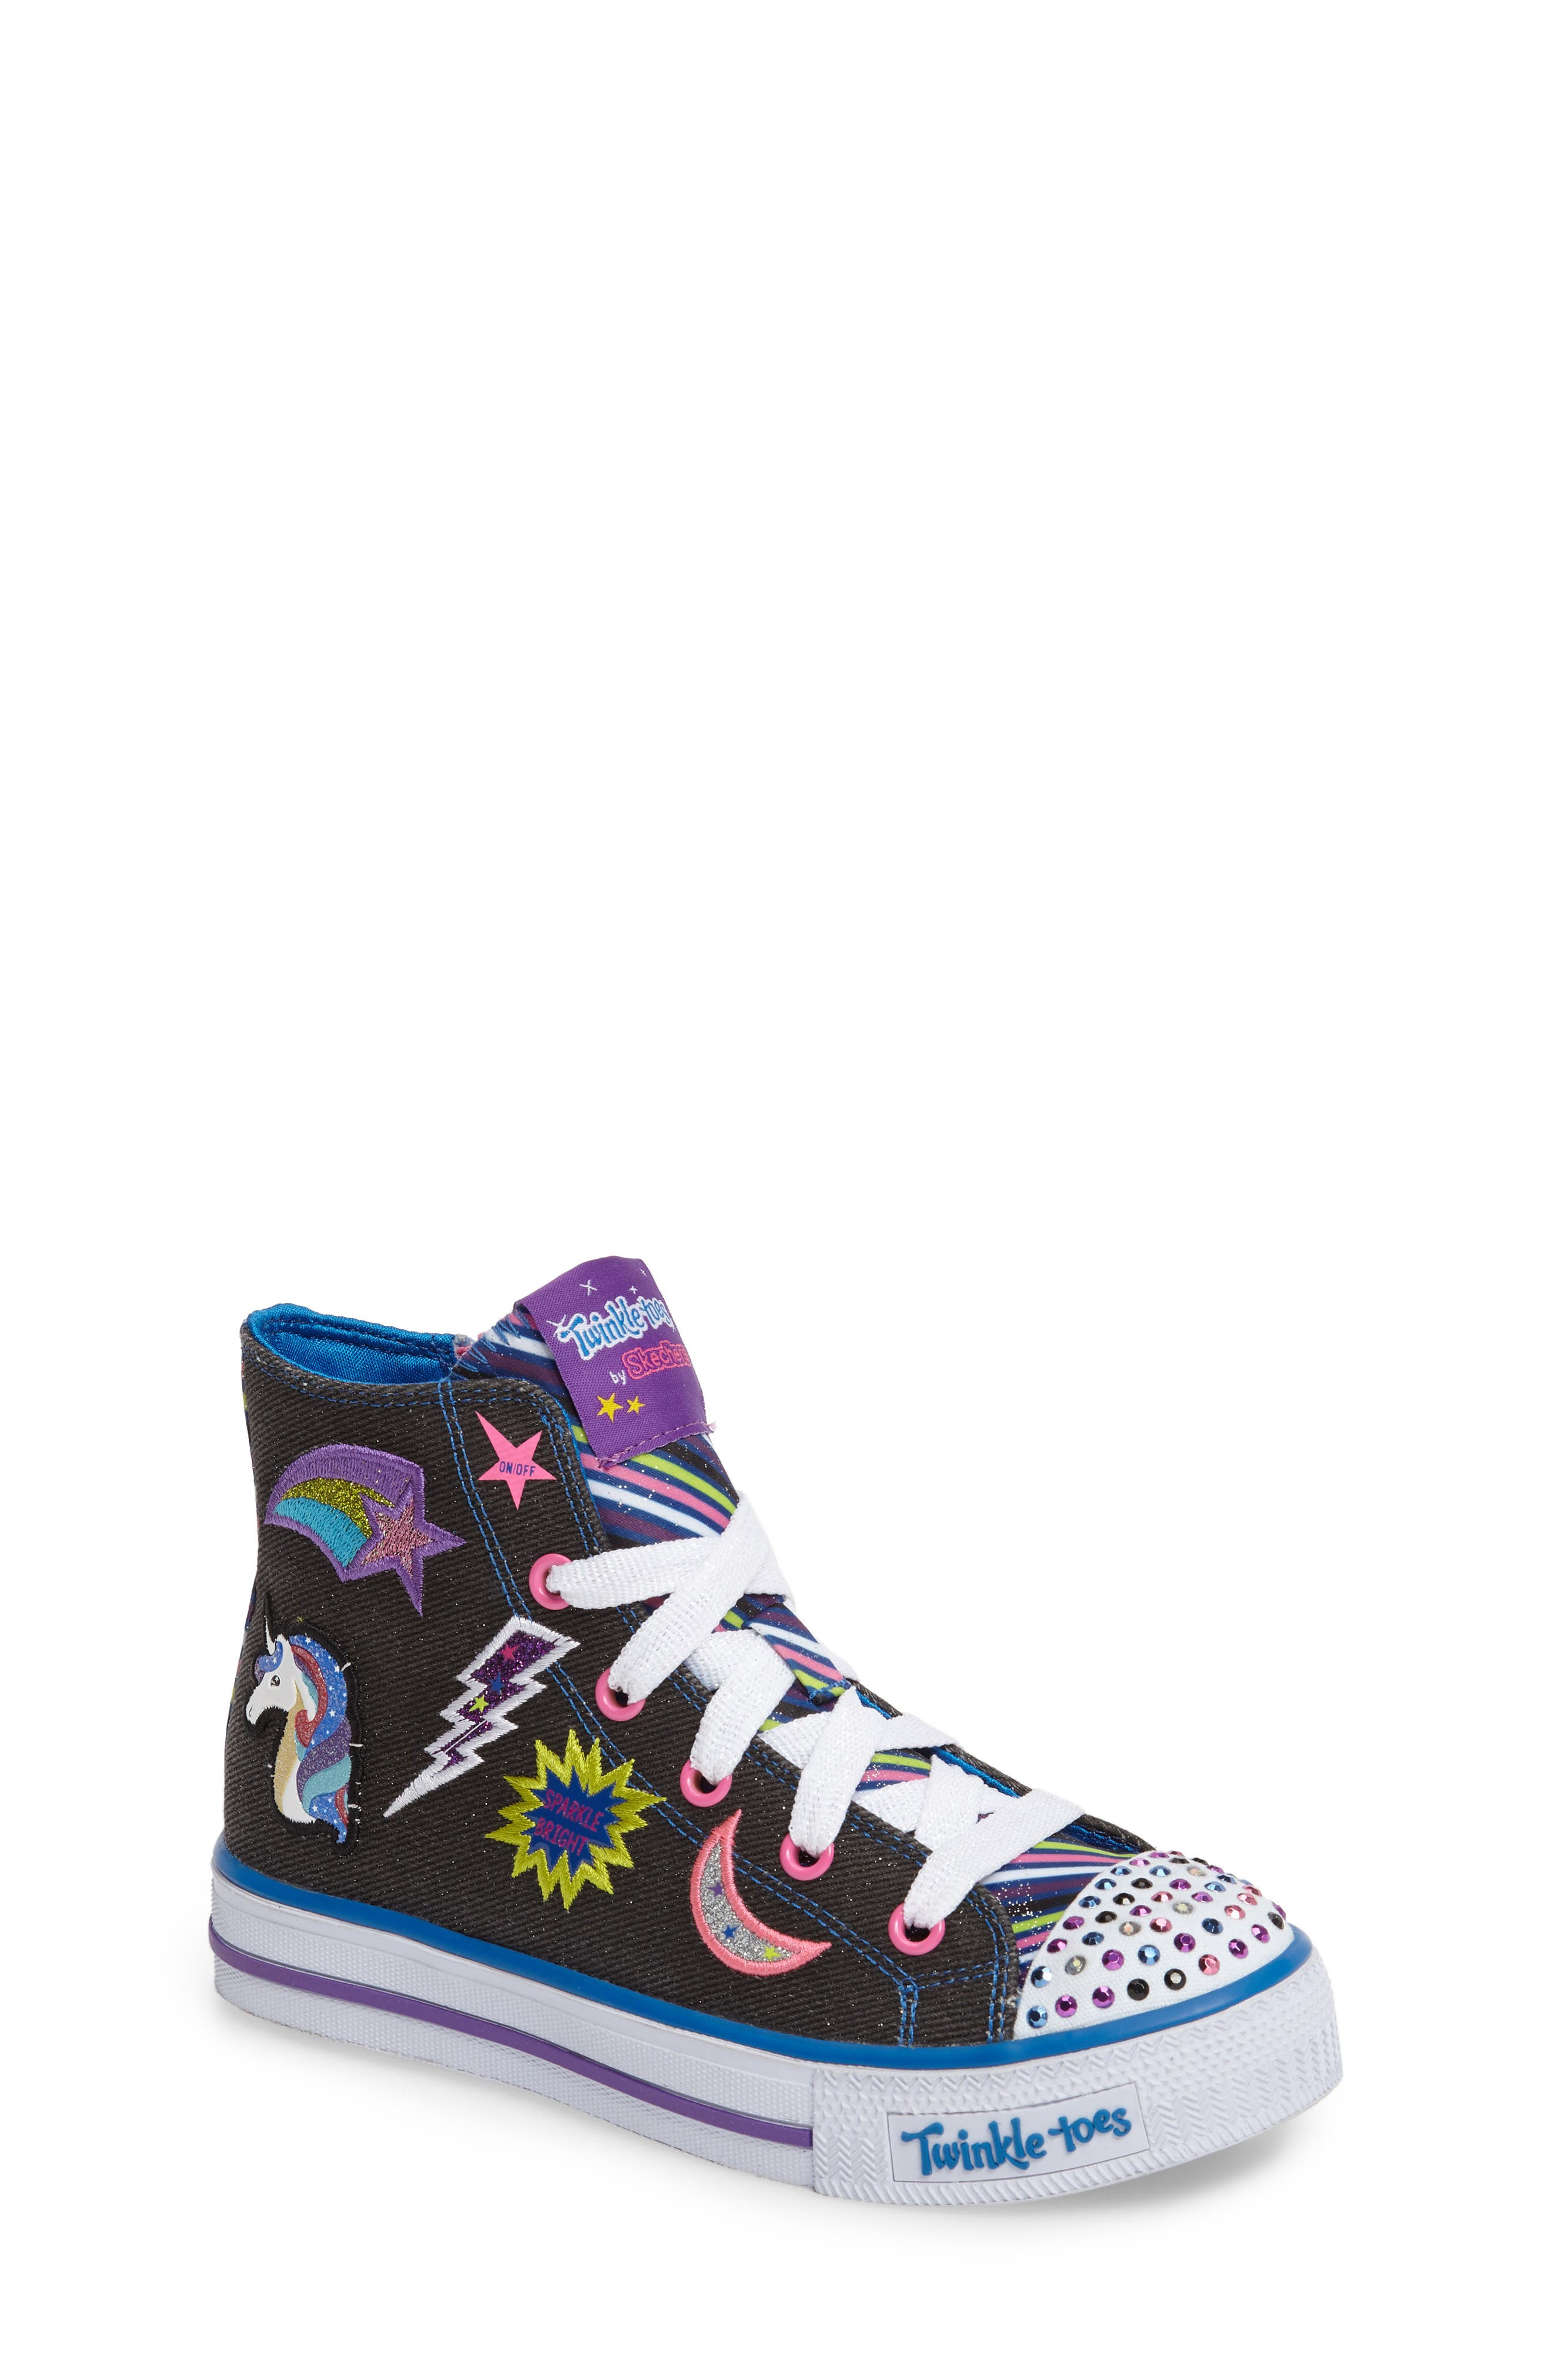 Twinkle Toes Shuffles Light-Up High Top Sneaker,                             Main thumbnail 1, color,